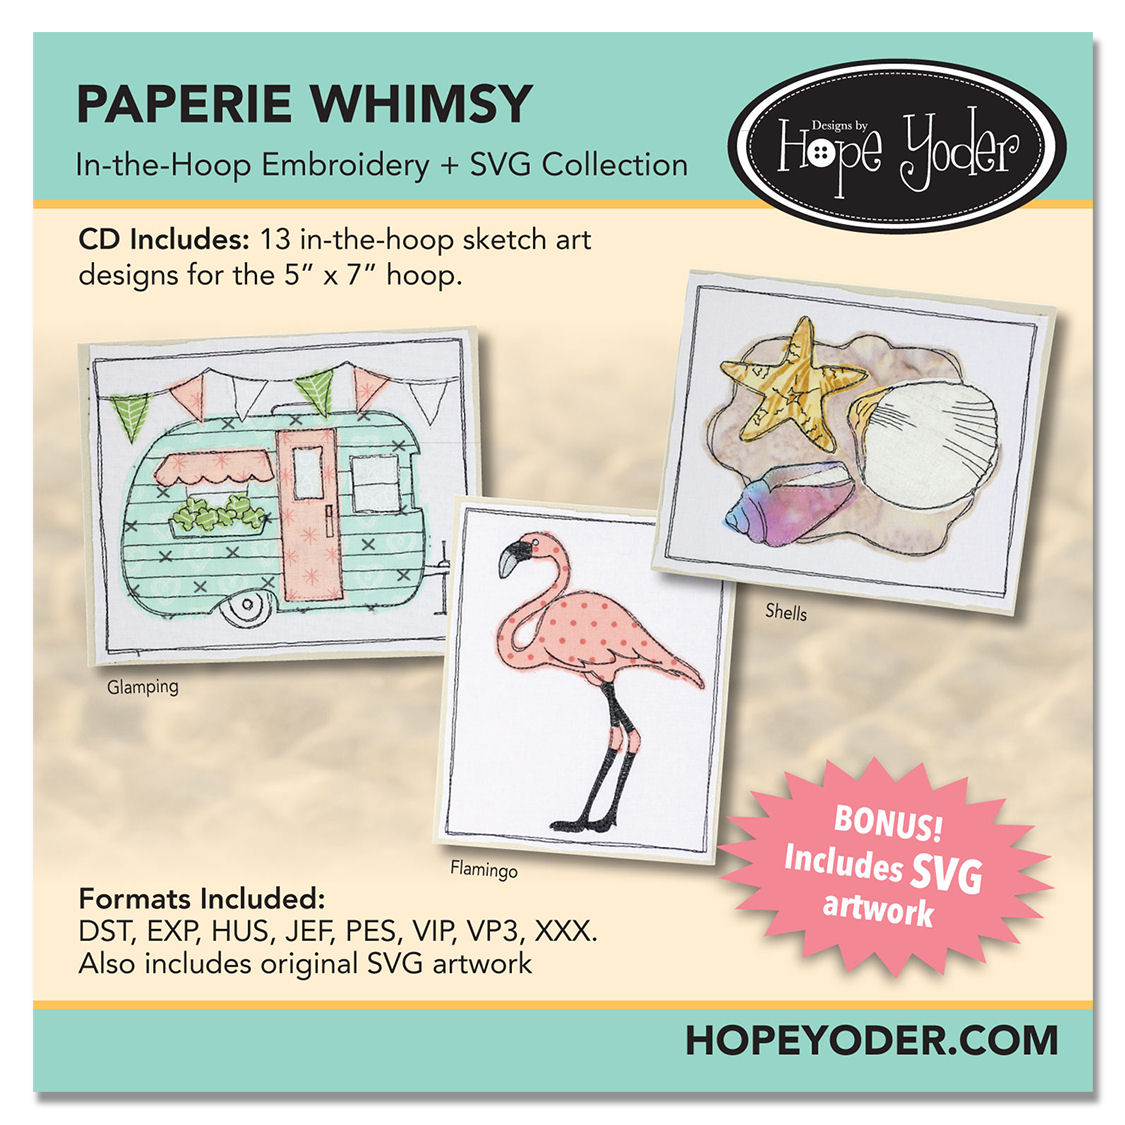 Paperie Whimsy Embroidery CD with SVG Files